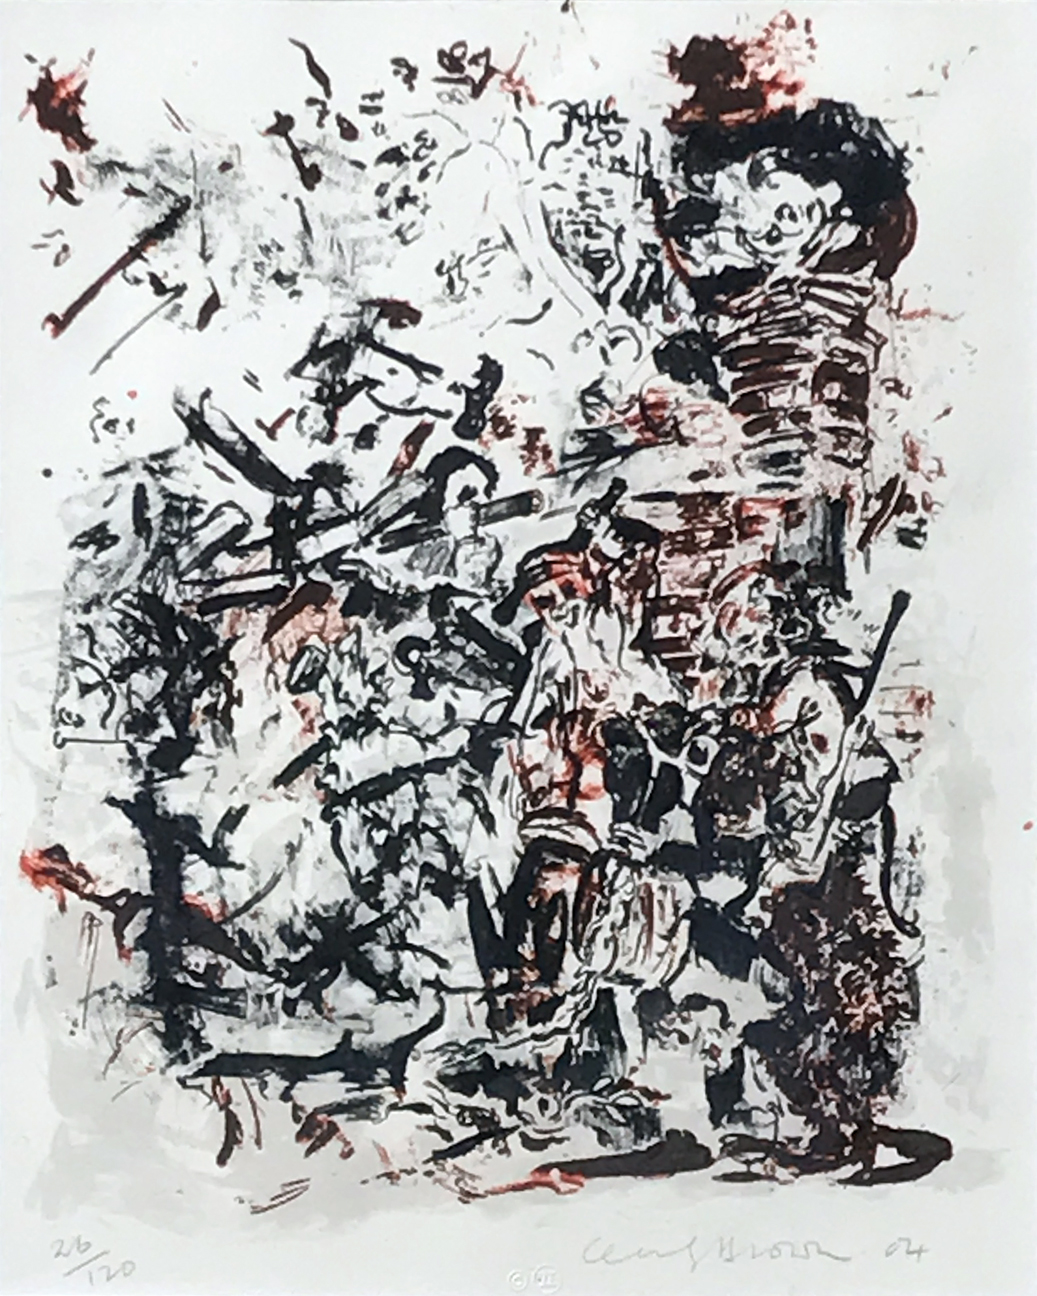 6.Cecily Brown. Untitled, 2004. Lithograph ed. 26/120, 16 ¾ x 13 in.